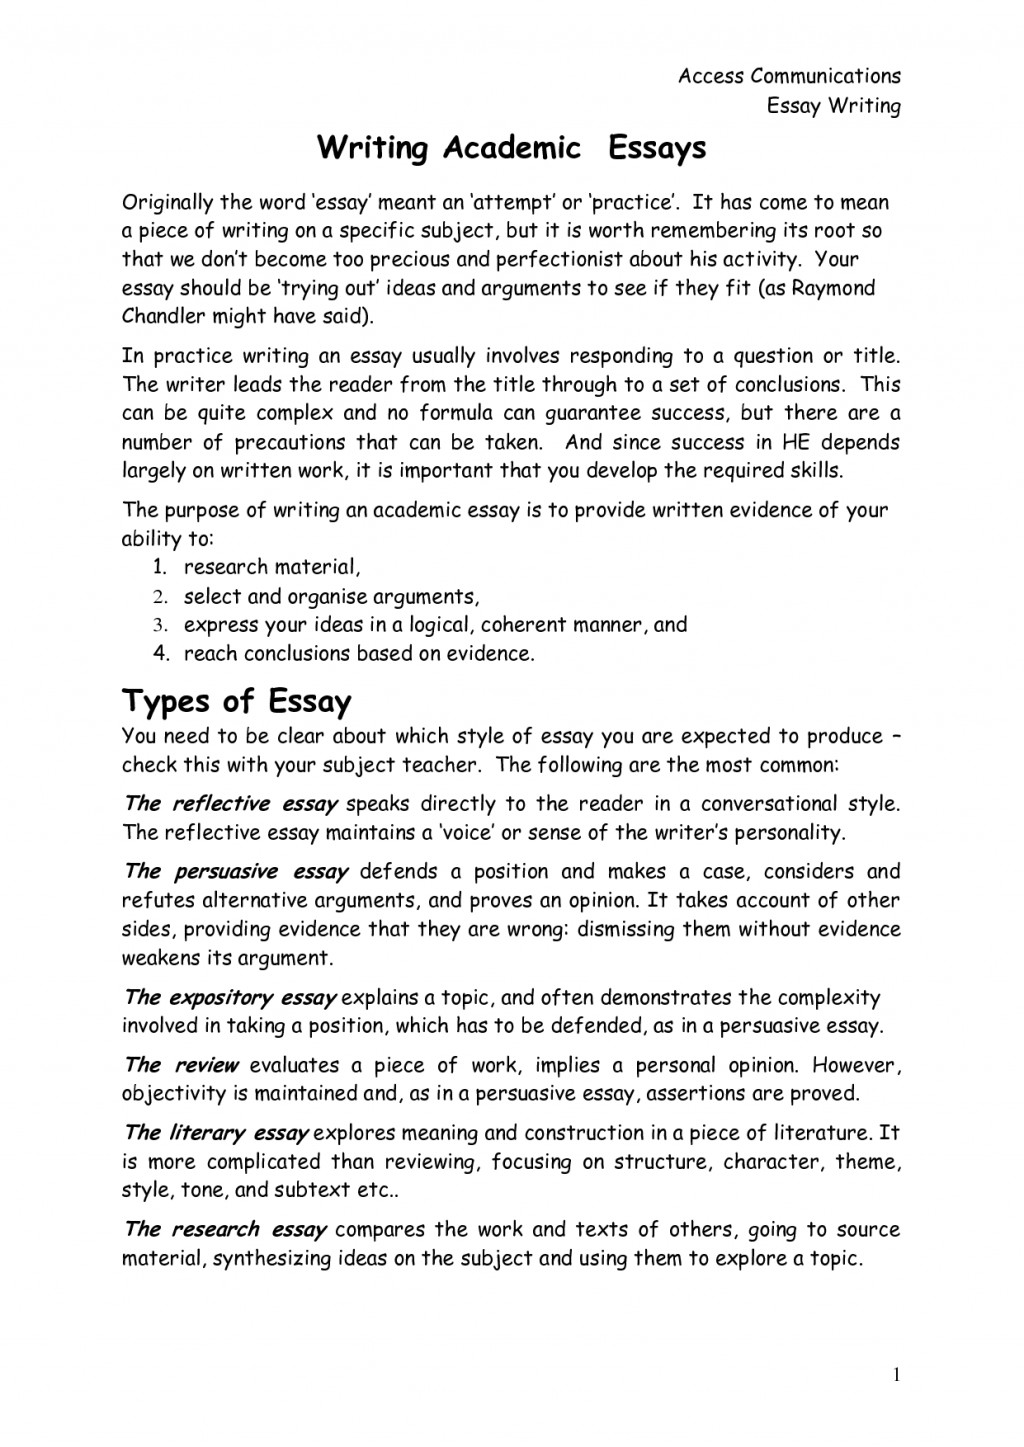 001 Write An Academic Essay Introduction How To Staggering Argumentative Pdf Ppt Effective Title Large